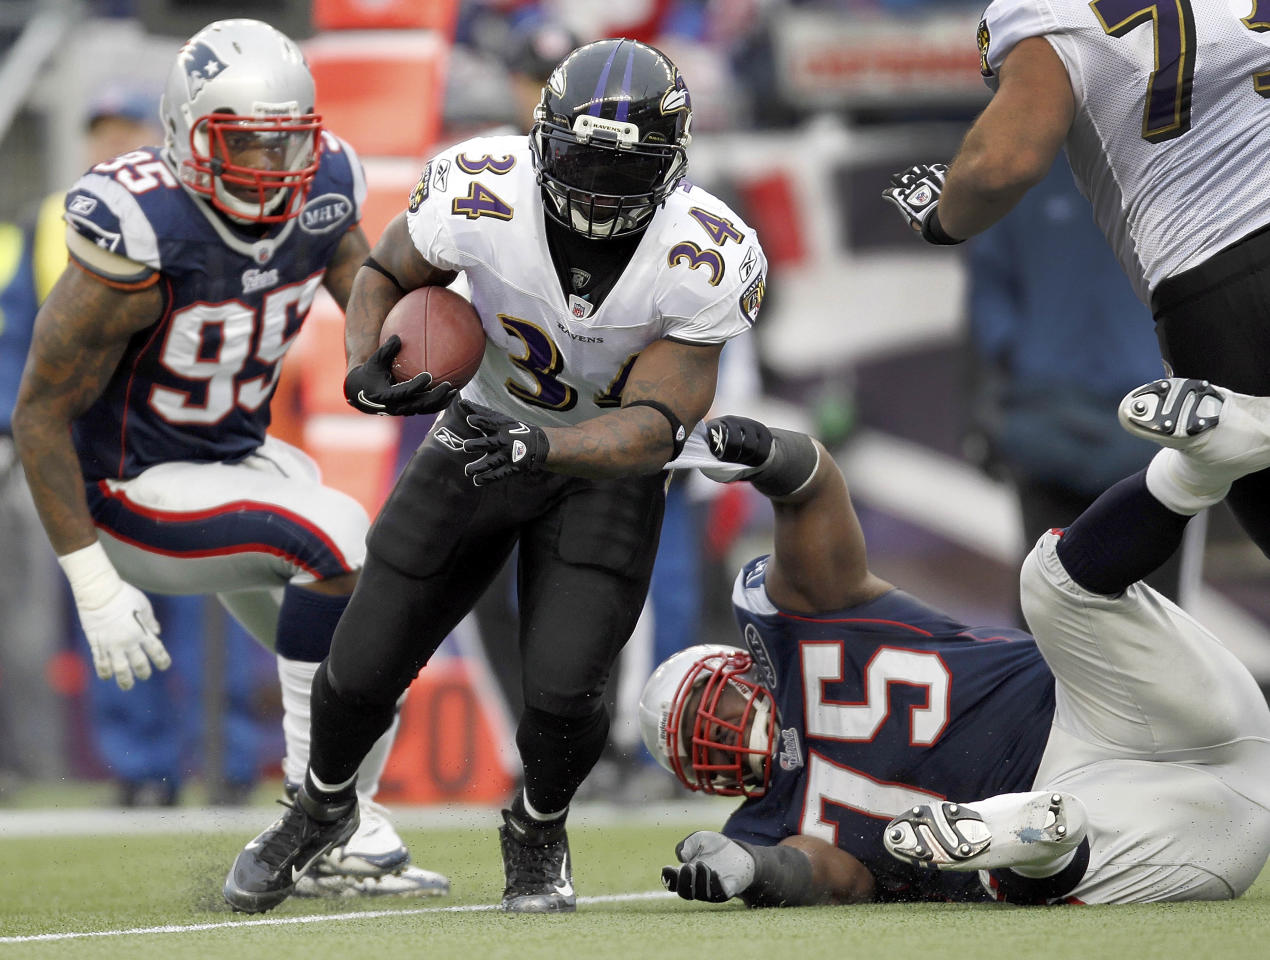 Baltimore Ravens running back Ricky Williams (34) runs between New England Patriots defensive end Mark Anderson (95) defensive tackle Vince Wilfork (75) during the first half of the AFC Championship NFL football game Sunday, Jan. 22, 2012, in Foxborough, Mass. (AP Photo/Winslow Townson)